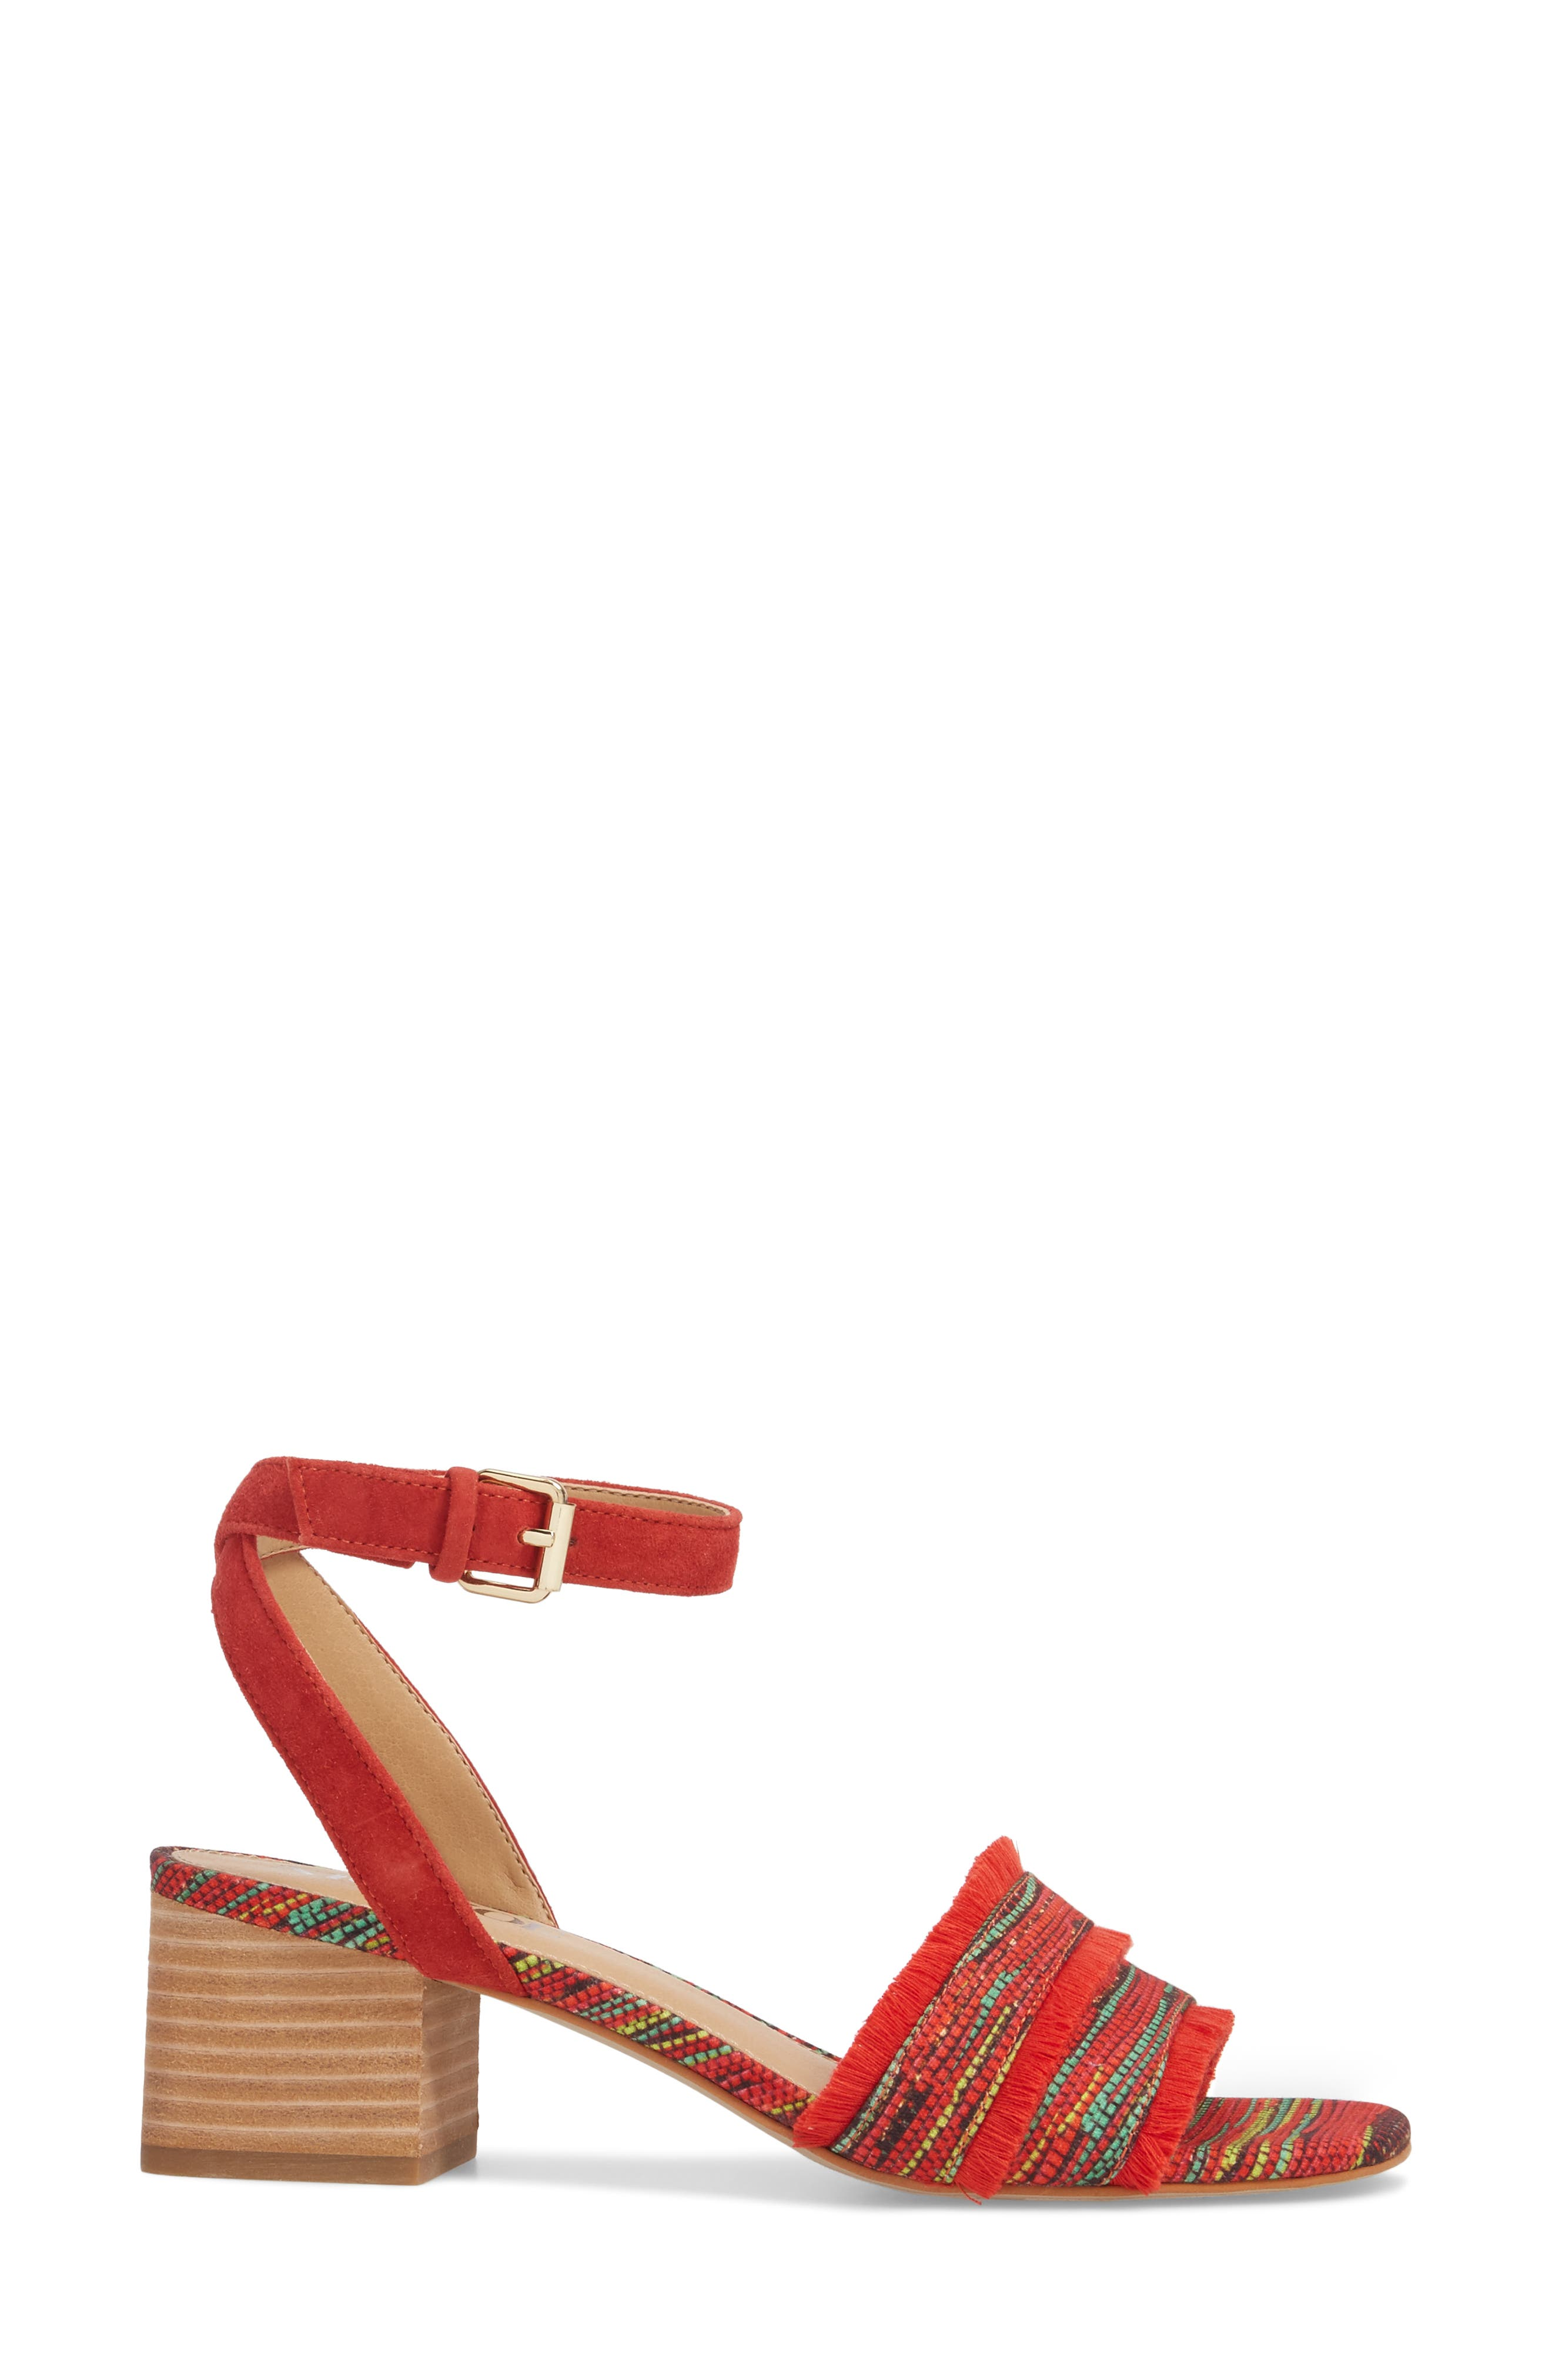 Zaria Fringed Sandal,                             Alternate thumbnail 3, color,                             Red Multi Fabric